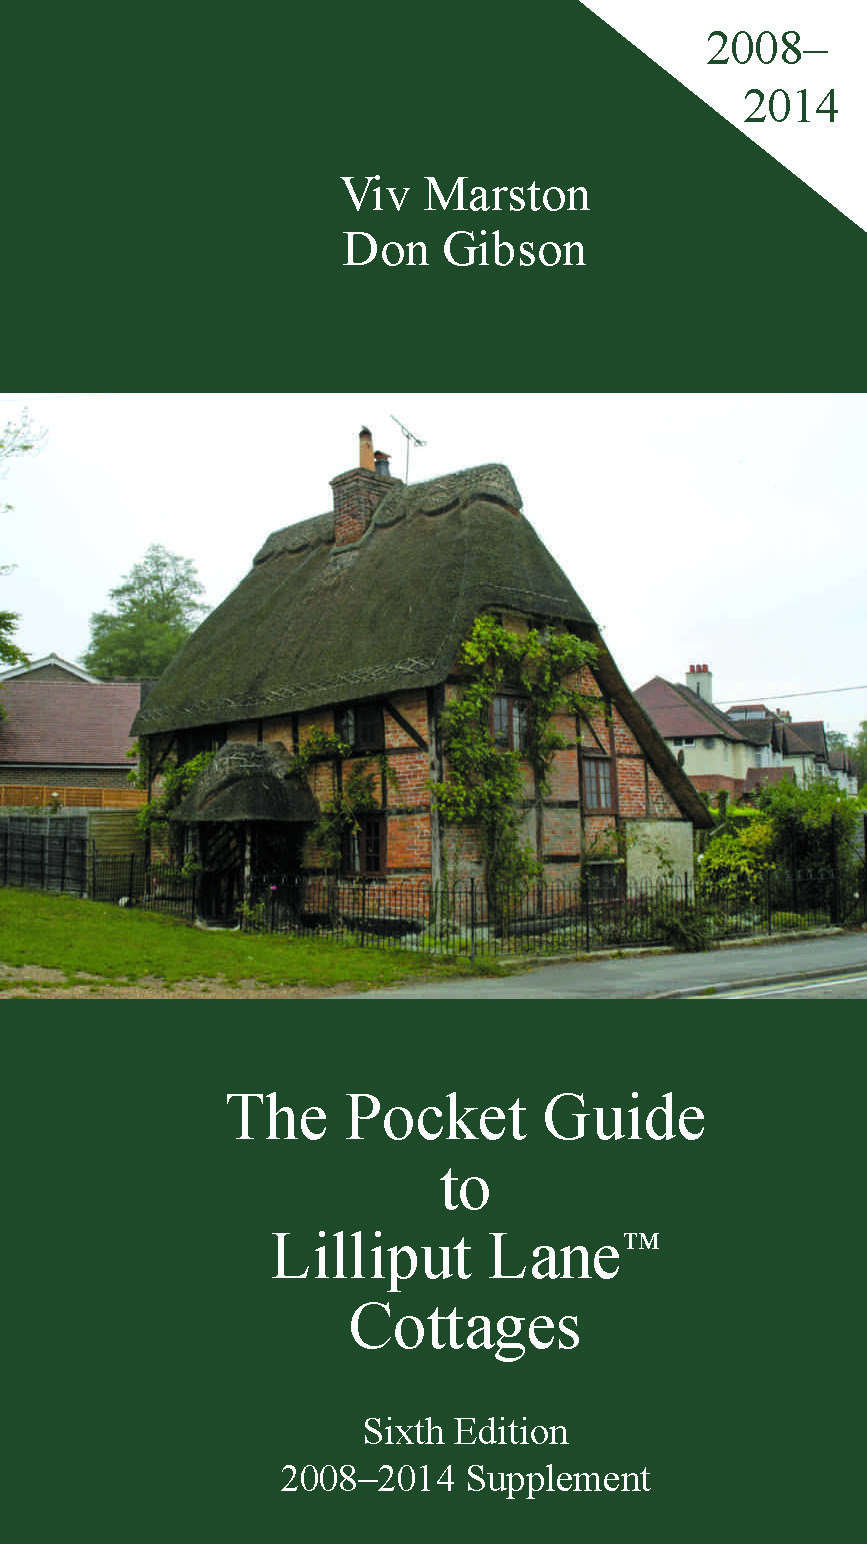 The Pocket Guide to Lilliput Lane Cottages